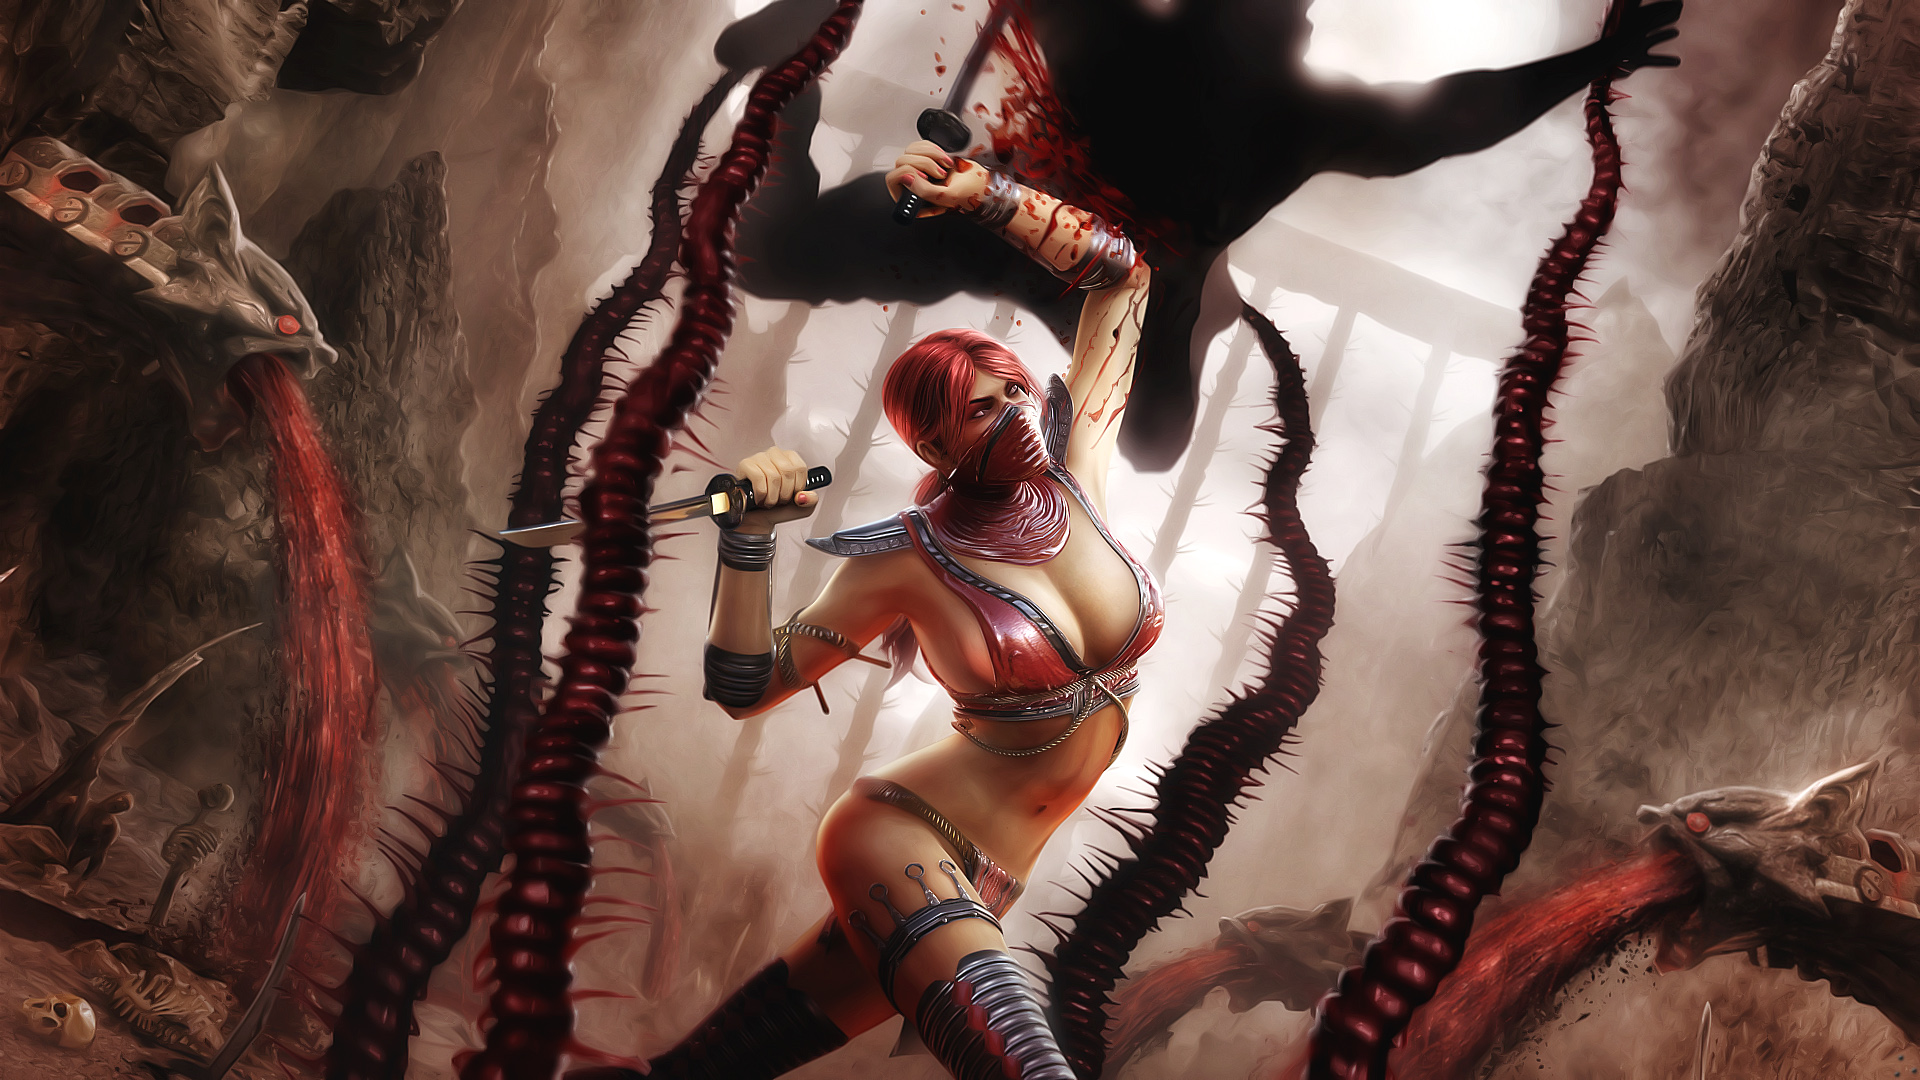 Skarlet in Mortal Kombat 654.17 Kb